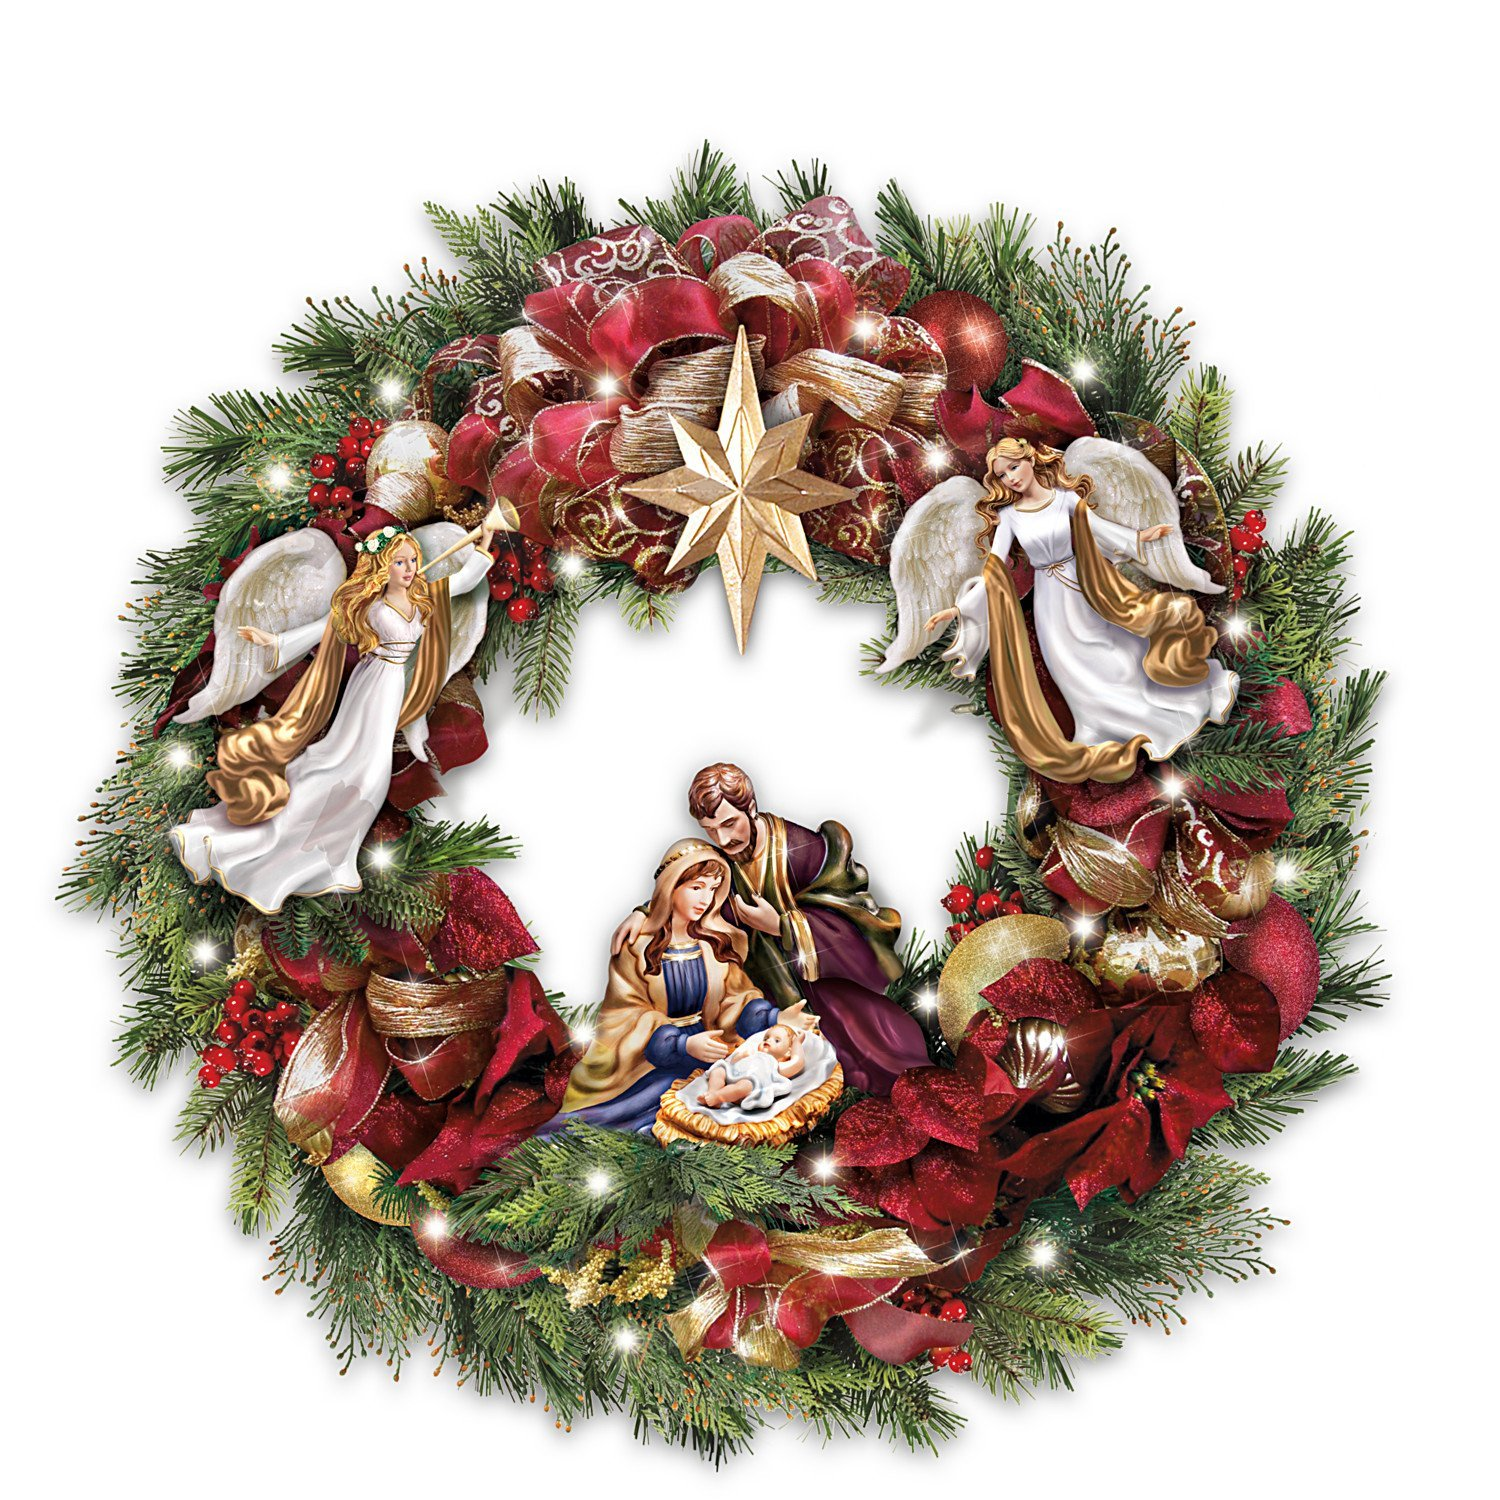 Thomas Kinkade Christmas Nativity Gifts